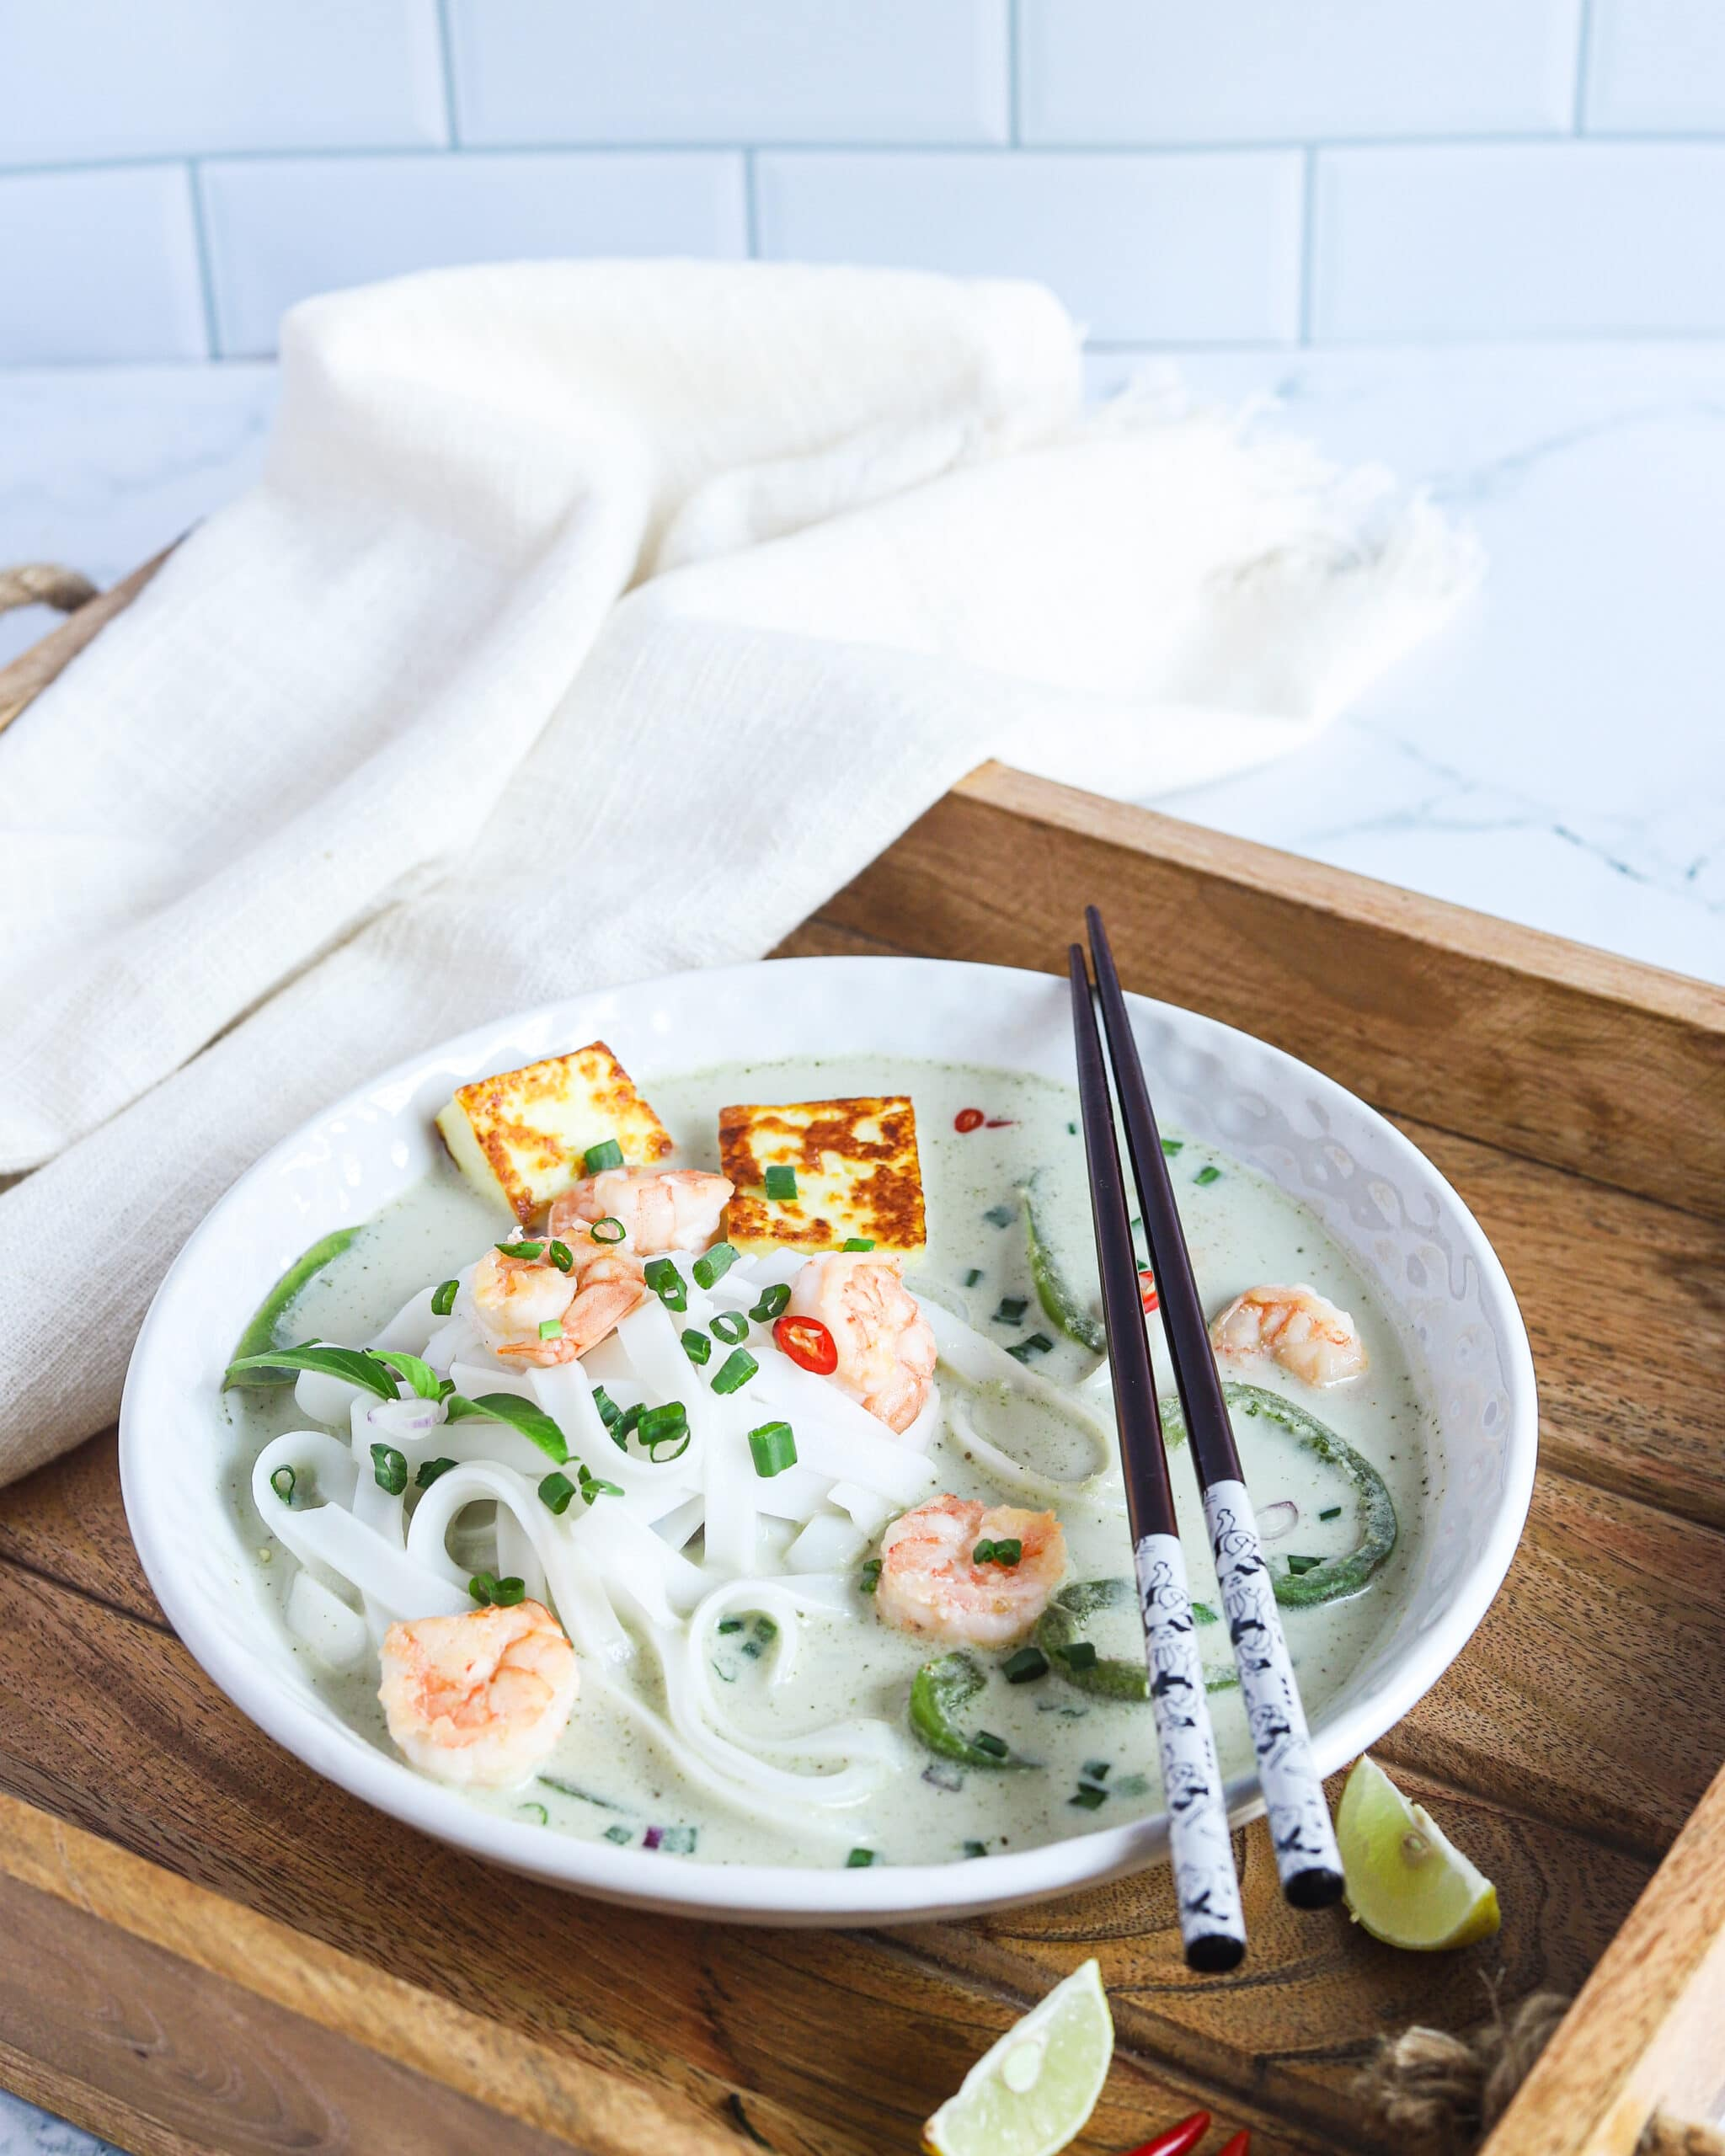 Thai Green Curry Noodles Chopsticks. These Thai Green Curry Noodles boast a flavorful broth made with coconut milk and fresh ingredients. Fill your bowl with fresh veggies, shrimp, tofu, and rice noodles for a flavorful easy weeknight dinner recipe.